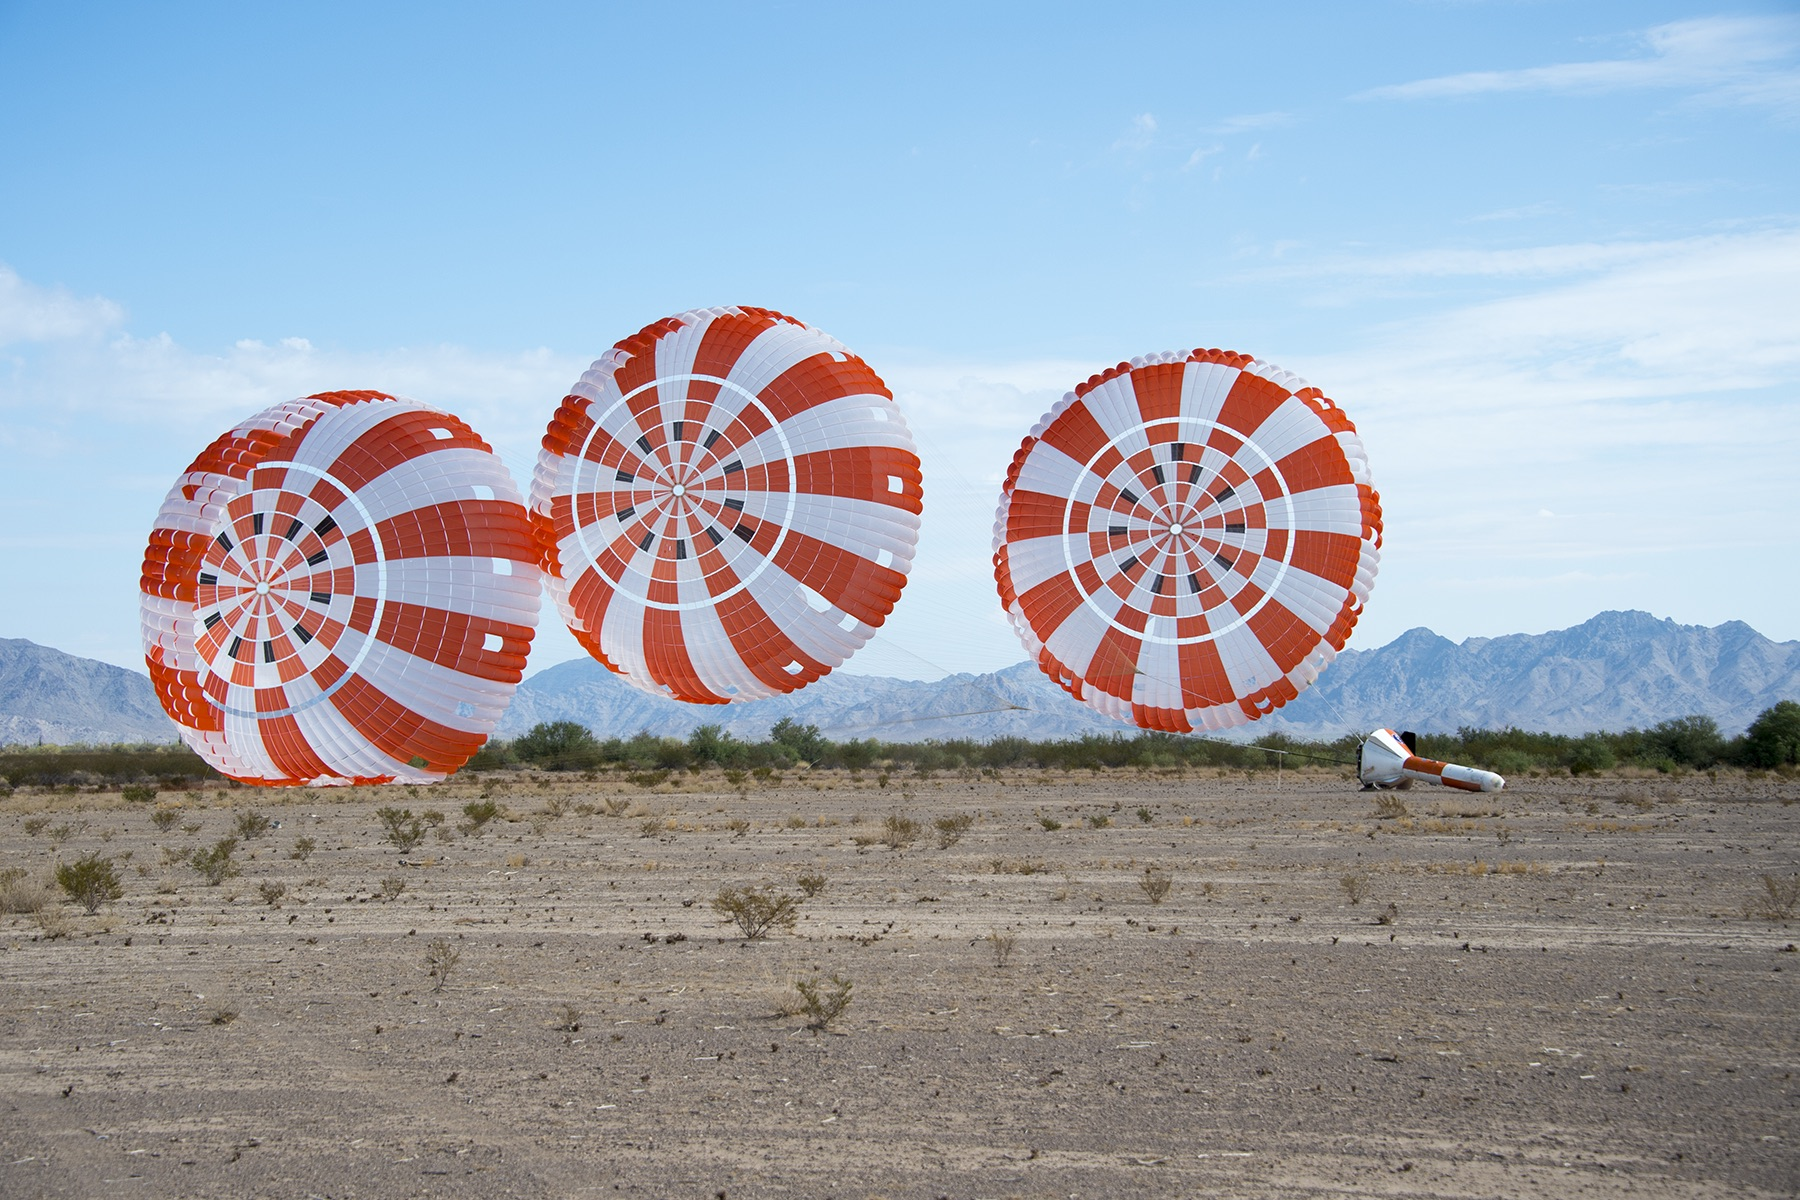 Orion Parachutes Chalk Up Another Test Success in Arizona | NASA